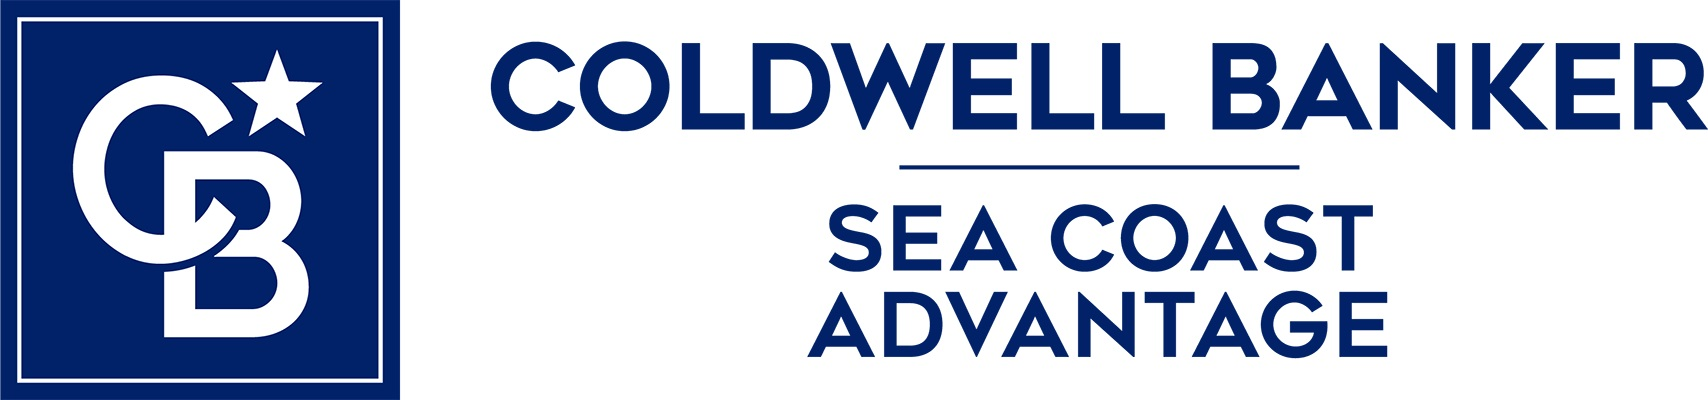 Jennifer Walz - Coldwell Banker Sea Coast Advantage Realty